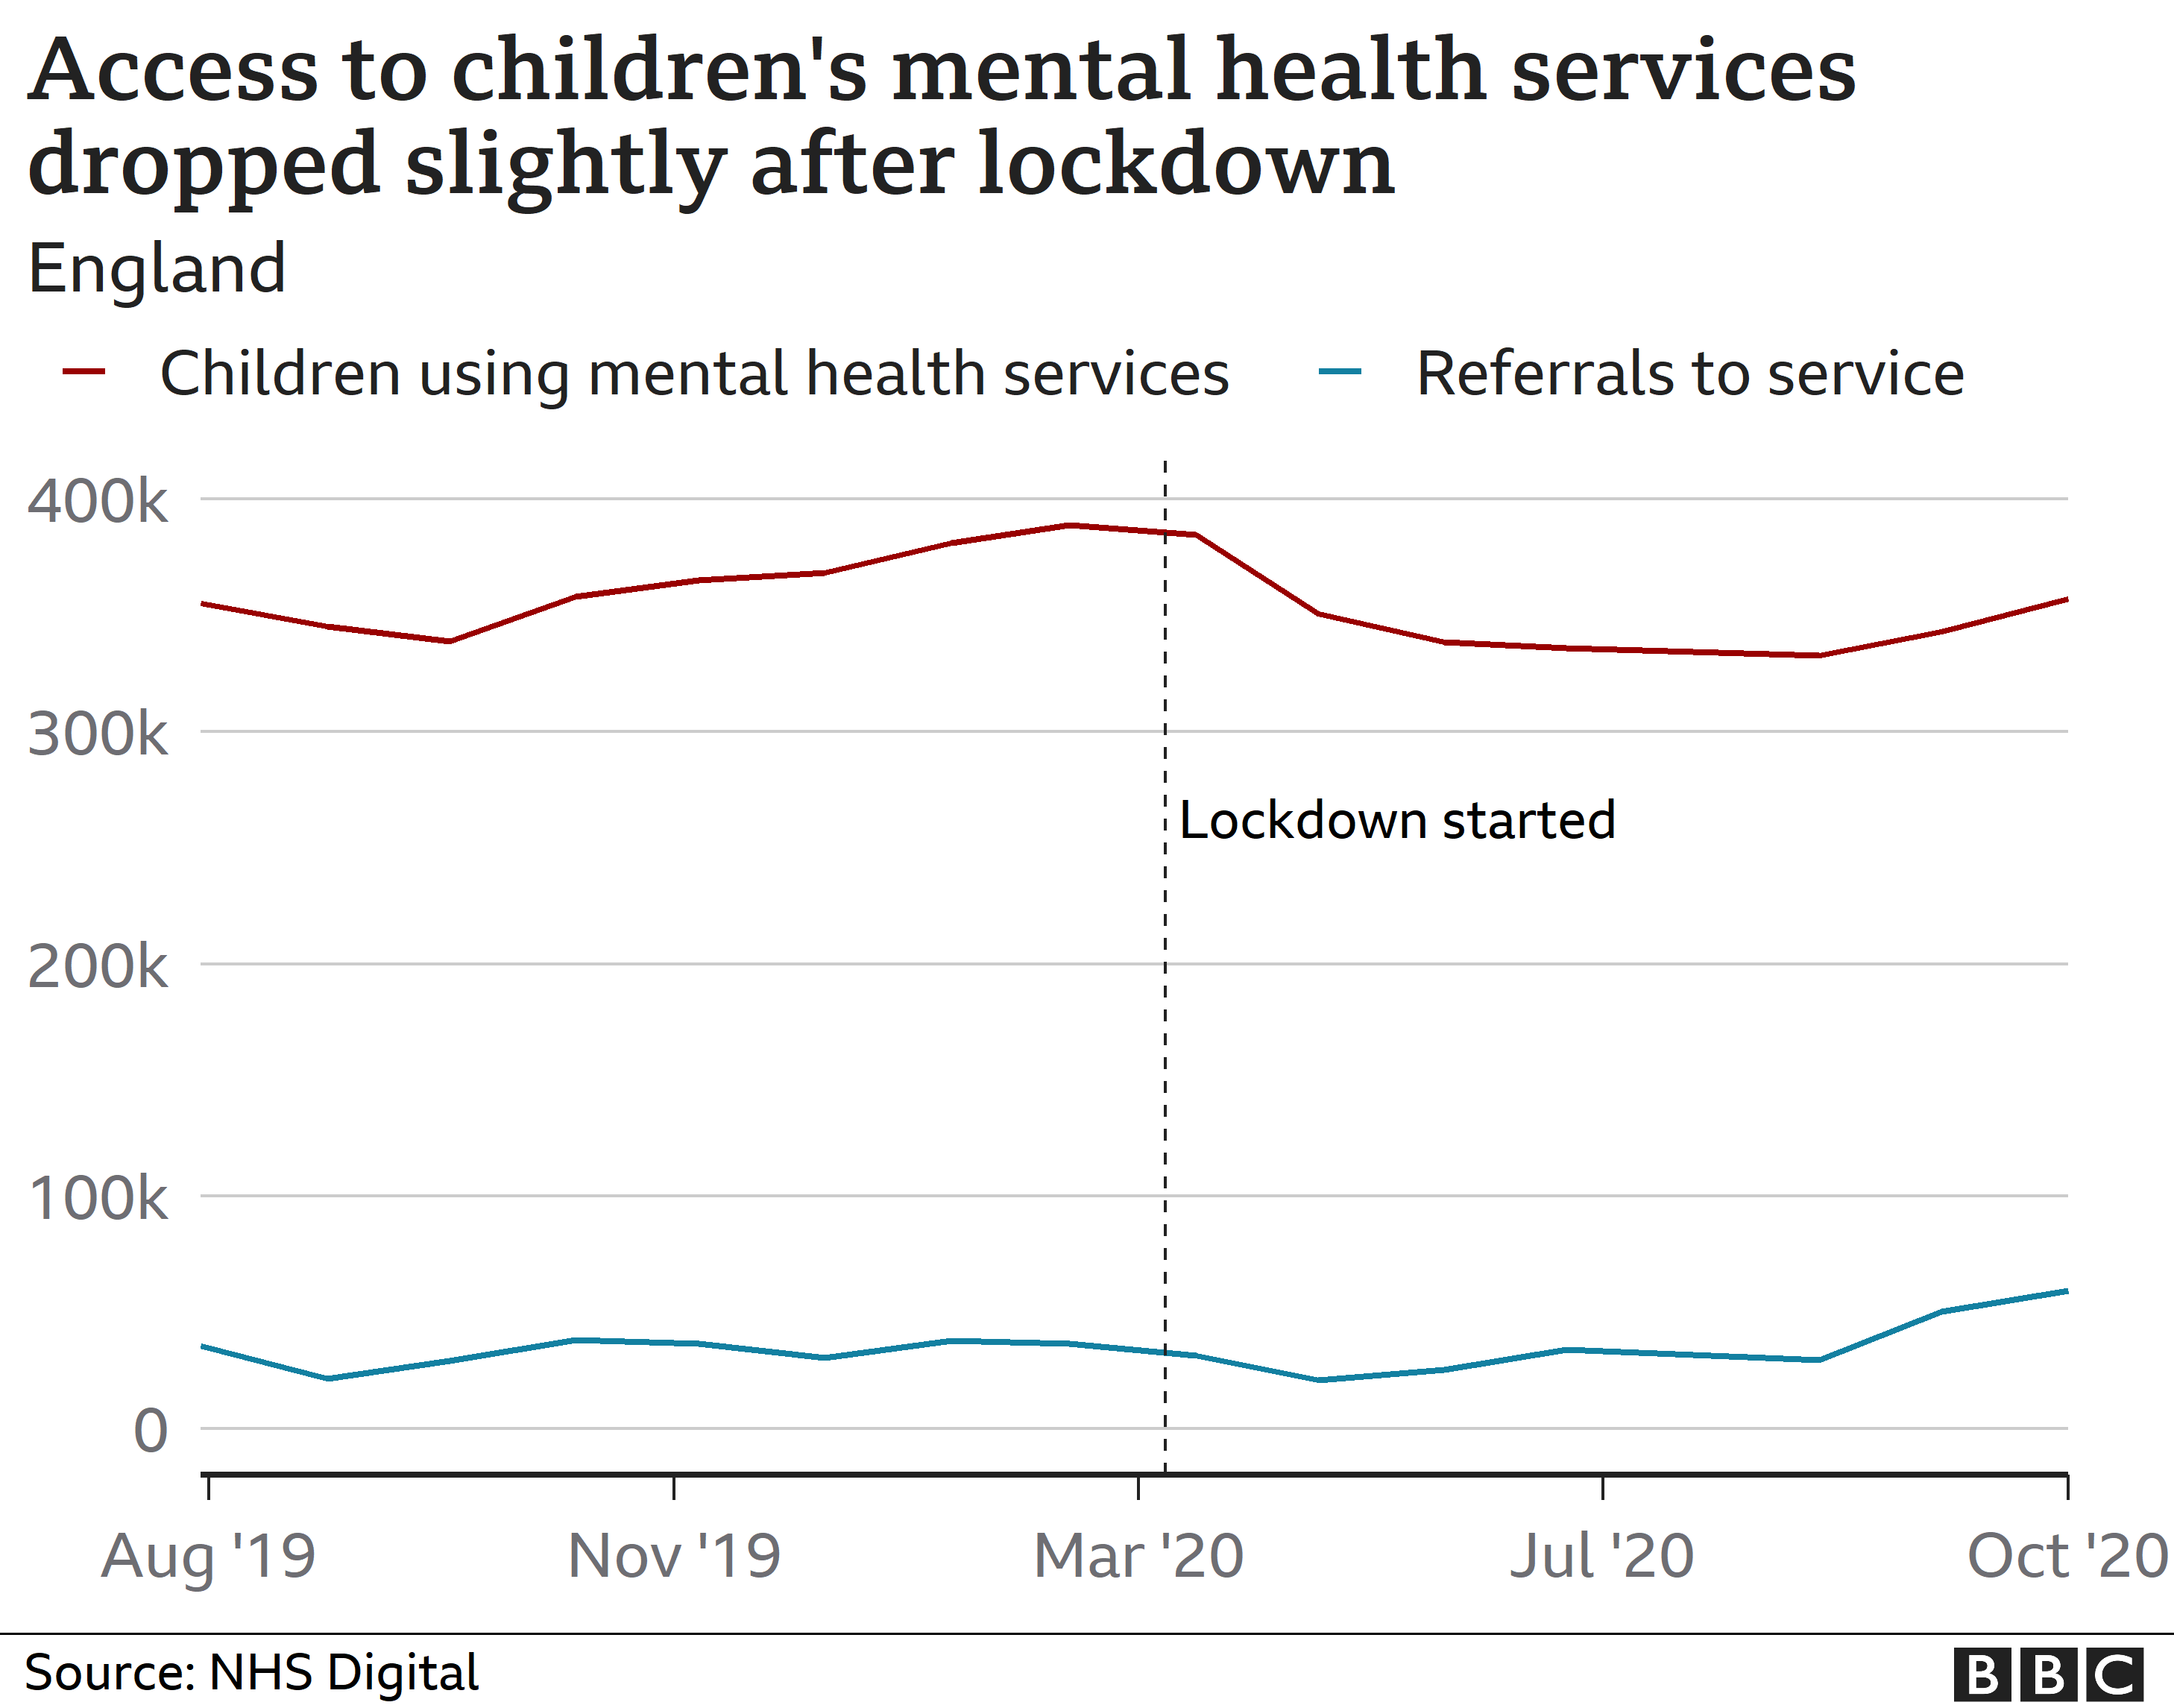 Chart showing changes in children's mental health